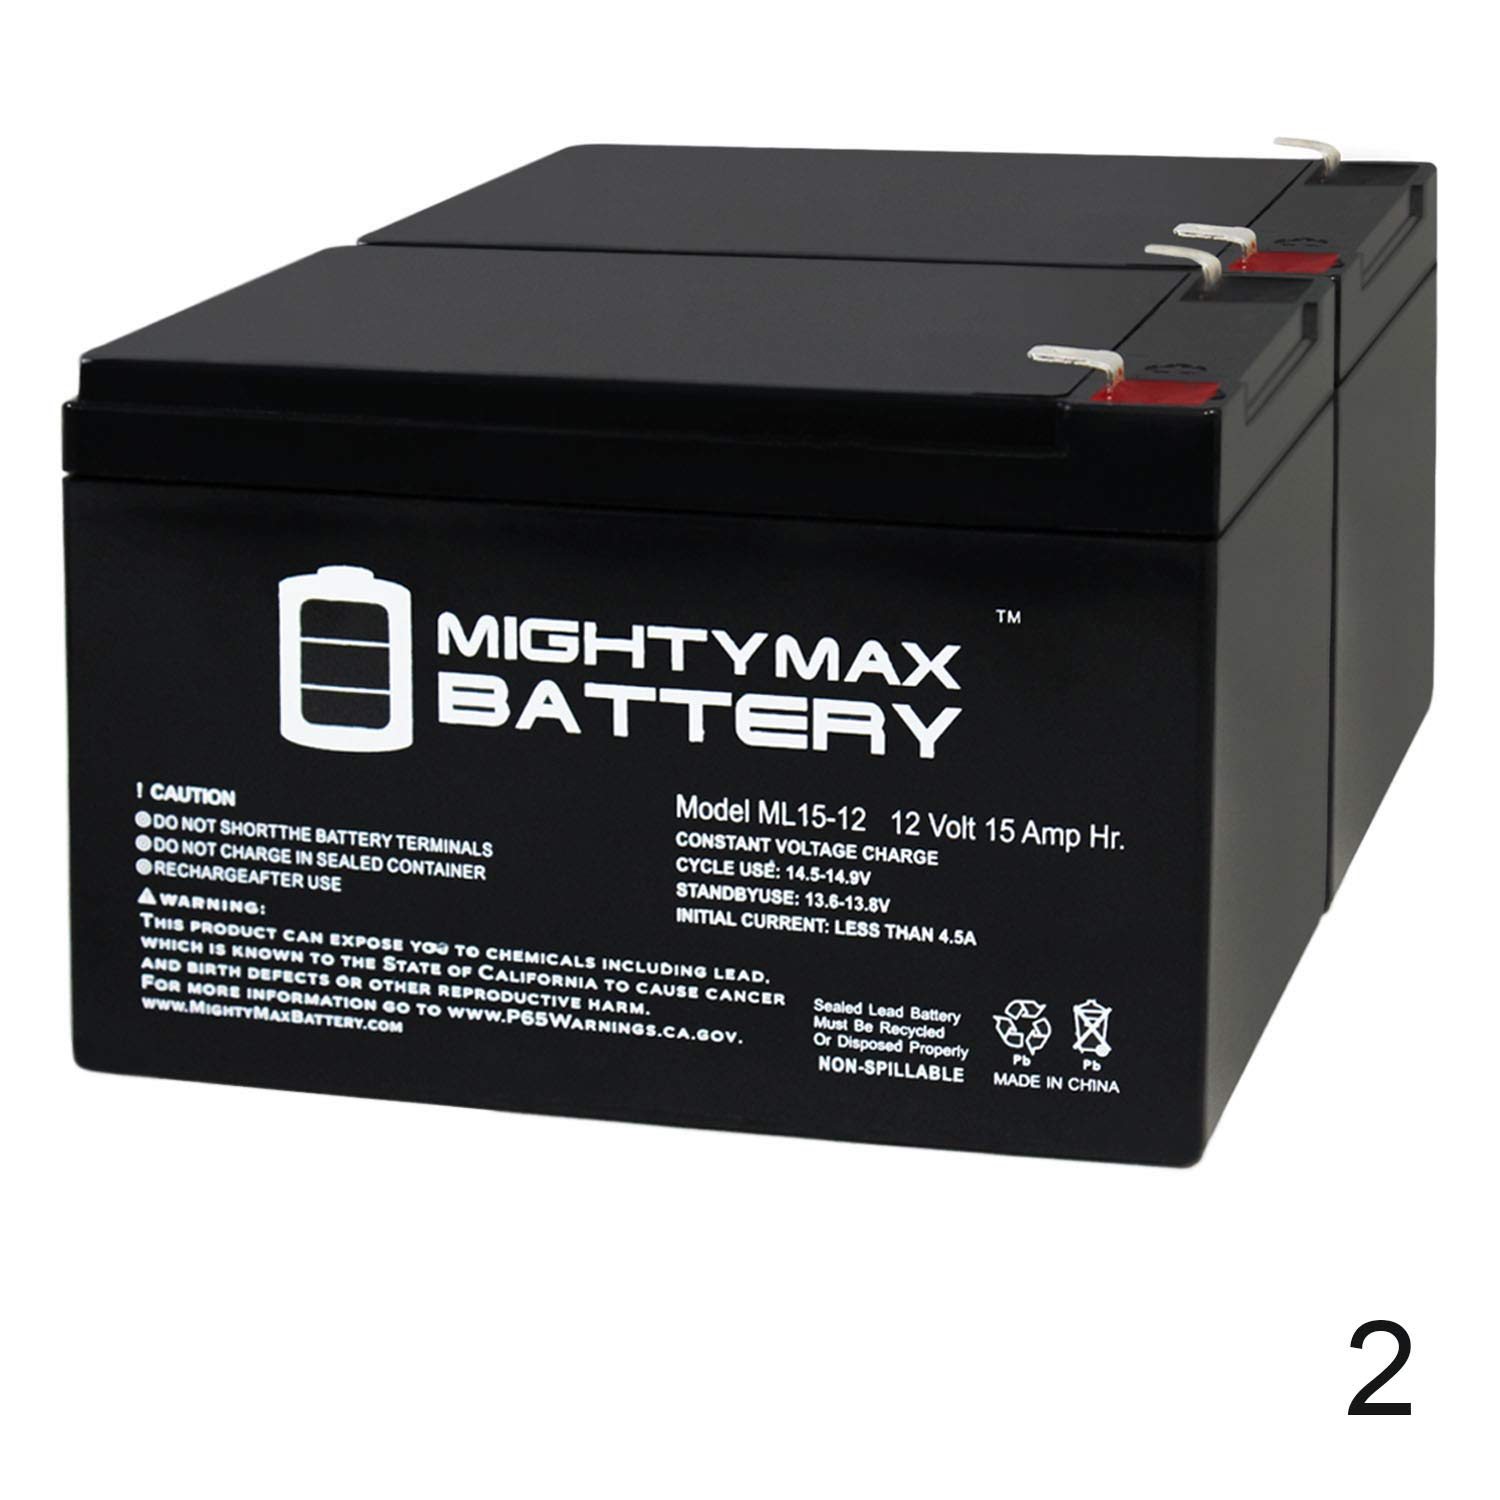 Mighty Max Battery 12V 15AH Replaces Pride Mobility SC40X Go-Go Ultra X 3 Wheel - 2 Pack Brand Product by Mighty Max Battery